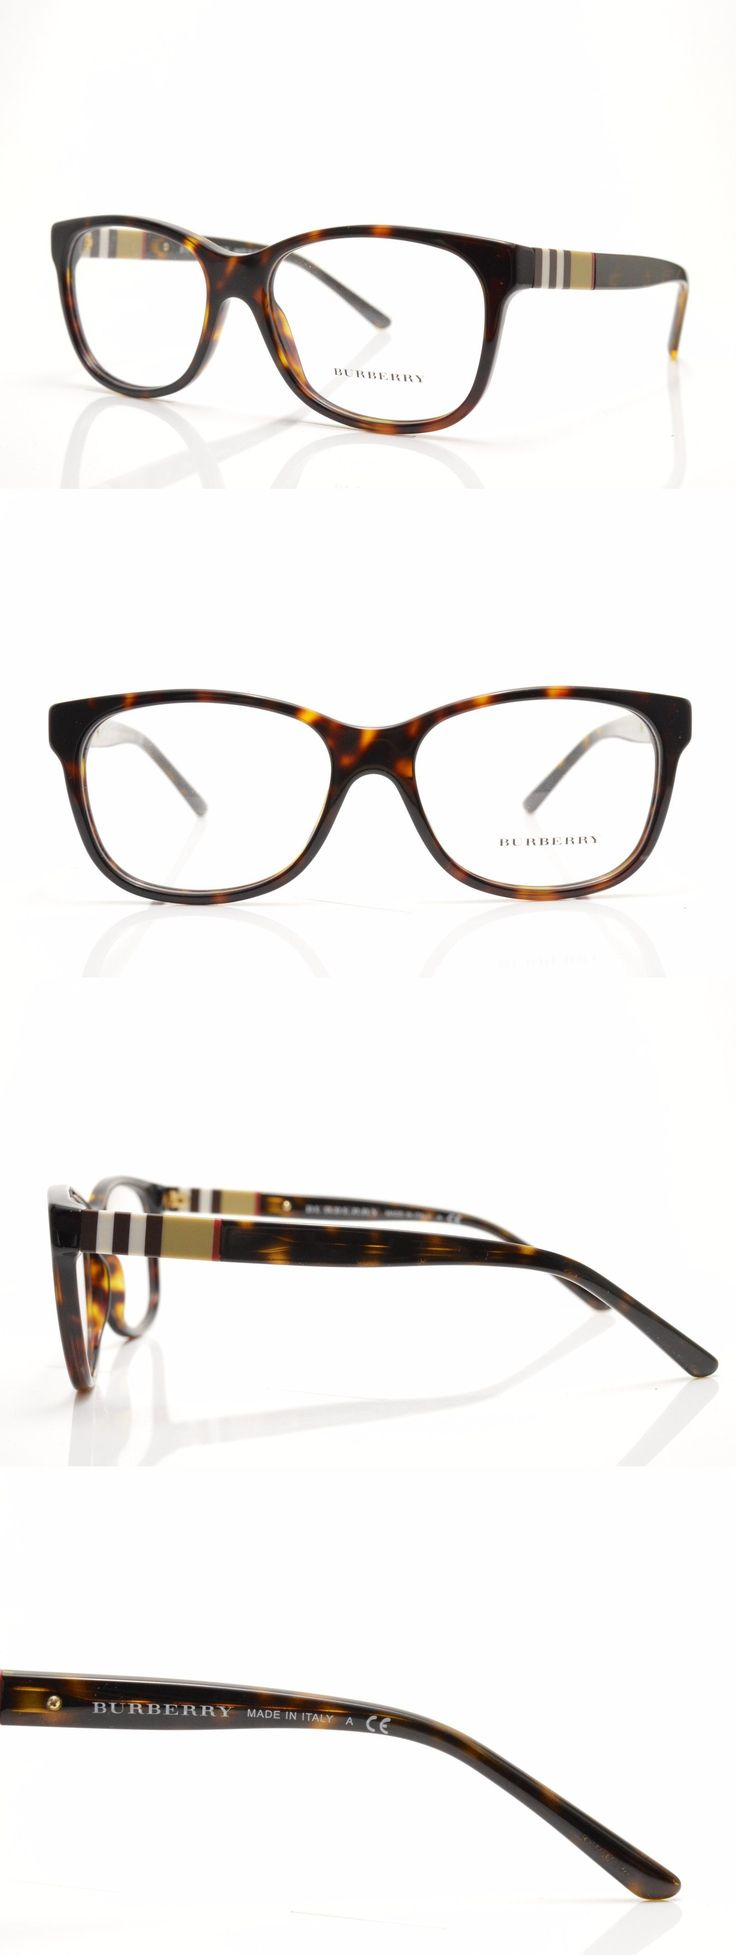 Eyeglass Frames: ??#17 B 2204 3002 (Q-0) New Authentic Burberry Eyeglasses Frame 54-16-140 Italy BUY IT NOW ONLY: $64.99